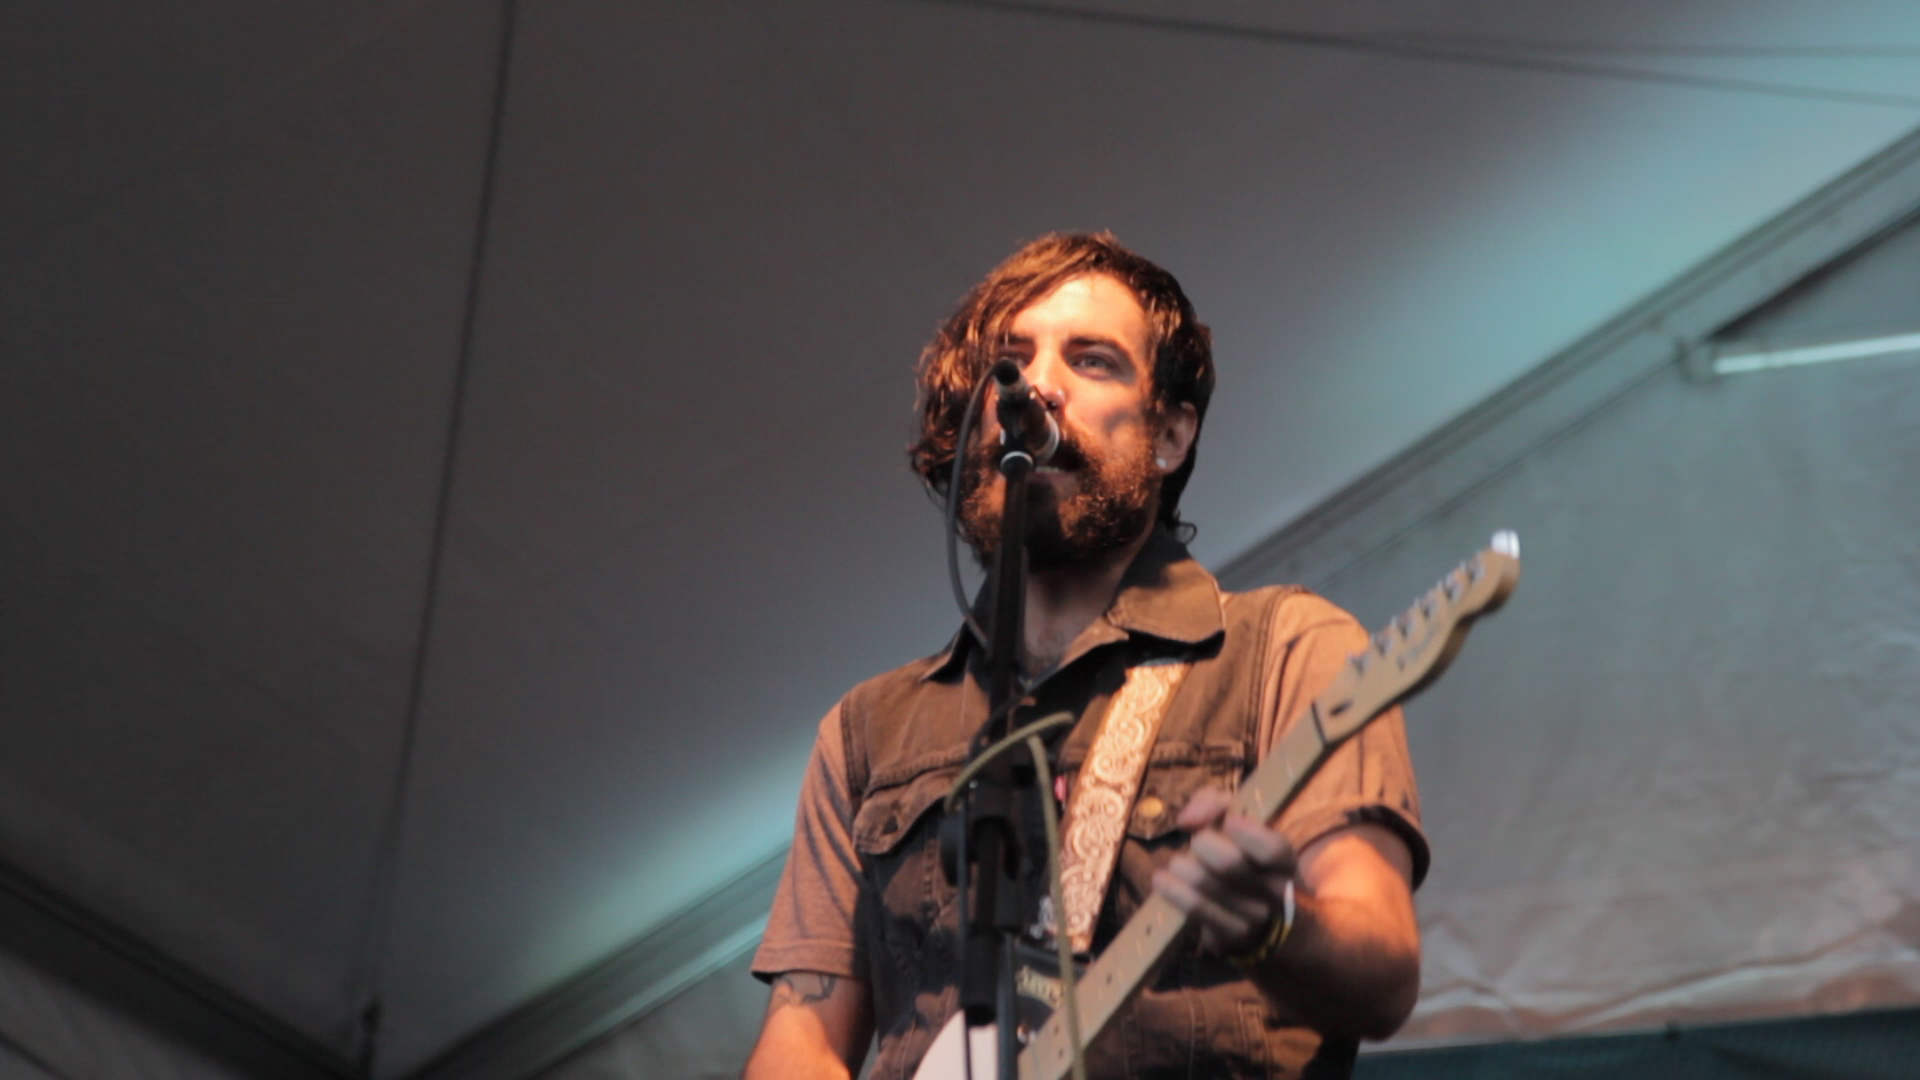 Video Archive- 2013-06-21: Vince Vaccaro at V.I.C. Fest 2013